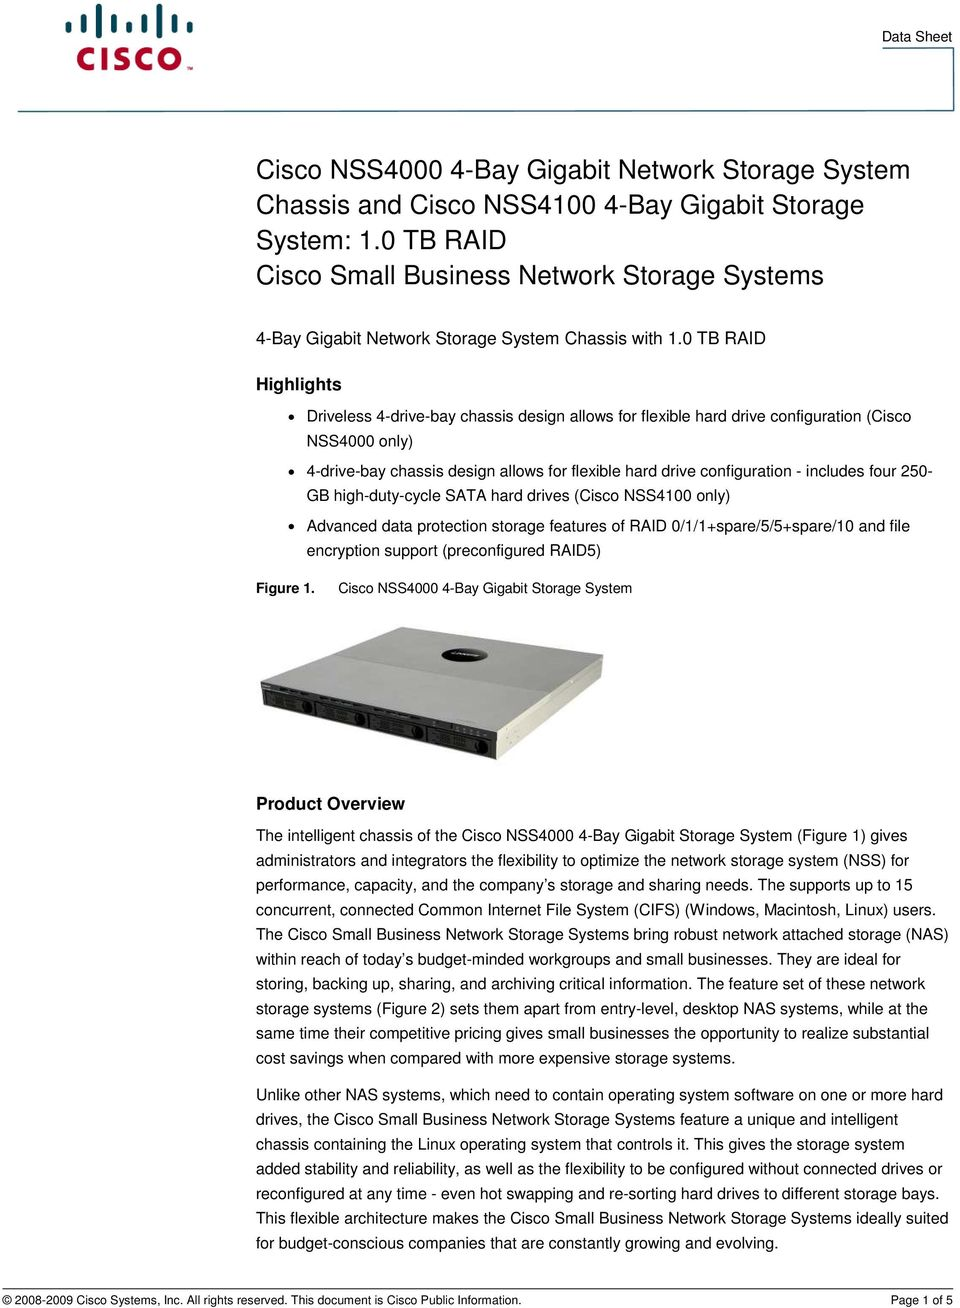 0 TB RAID Highlights Driveless 4-drive-bay chassis design allows for flexible hard drive configuration (Cisco NSS4000 only) 4-drive-bay chassis design allows for flexible hard drive configuration -